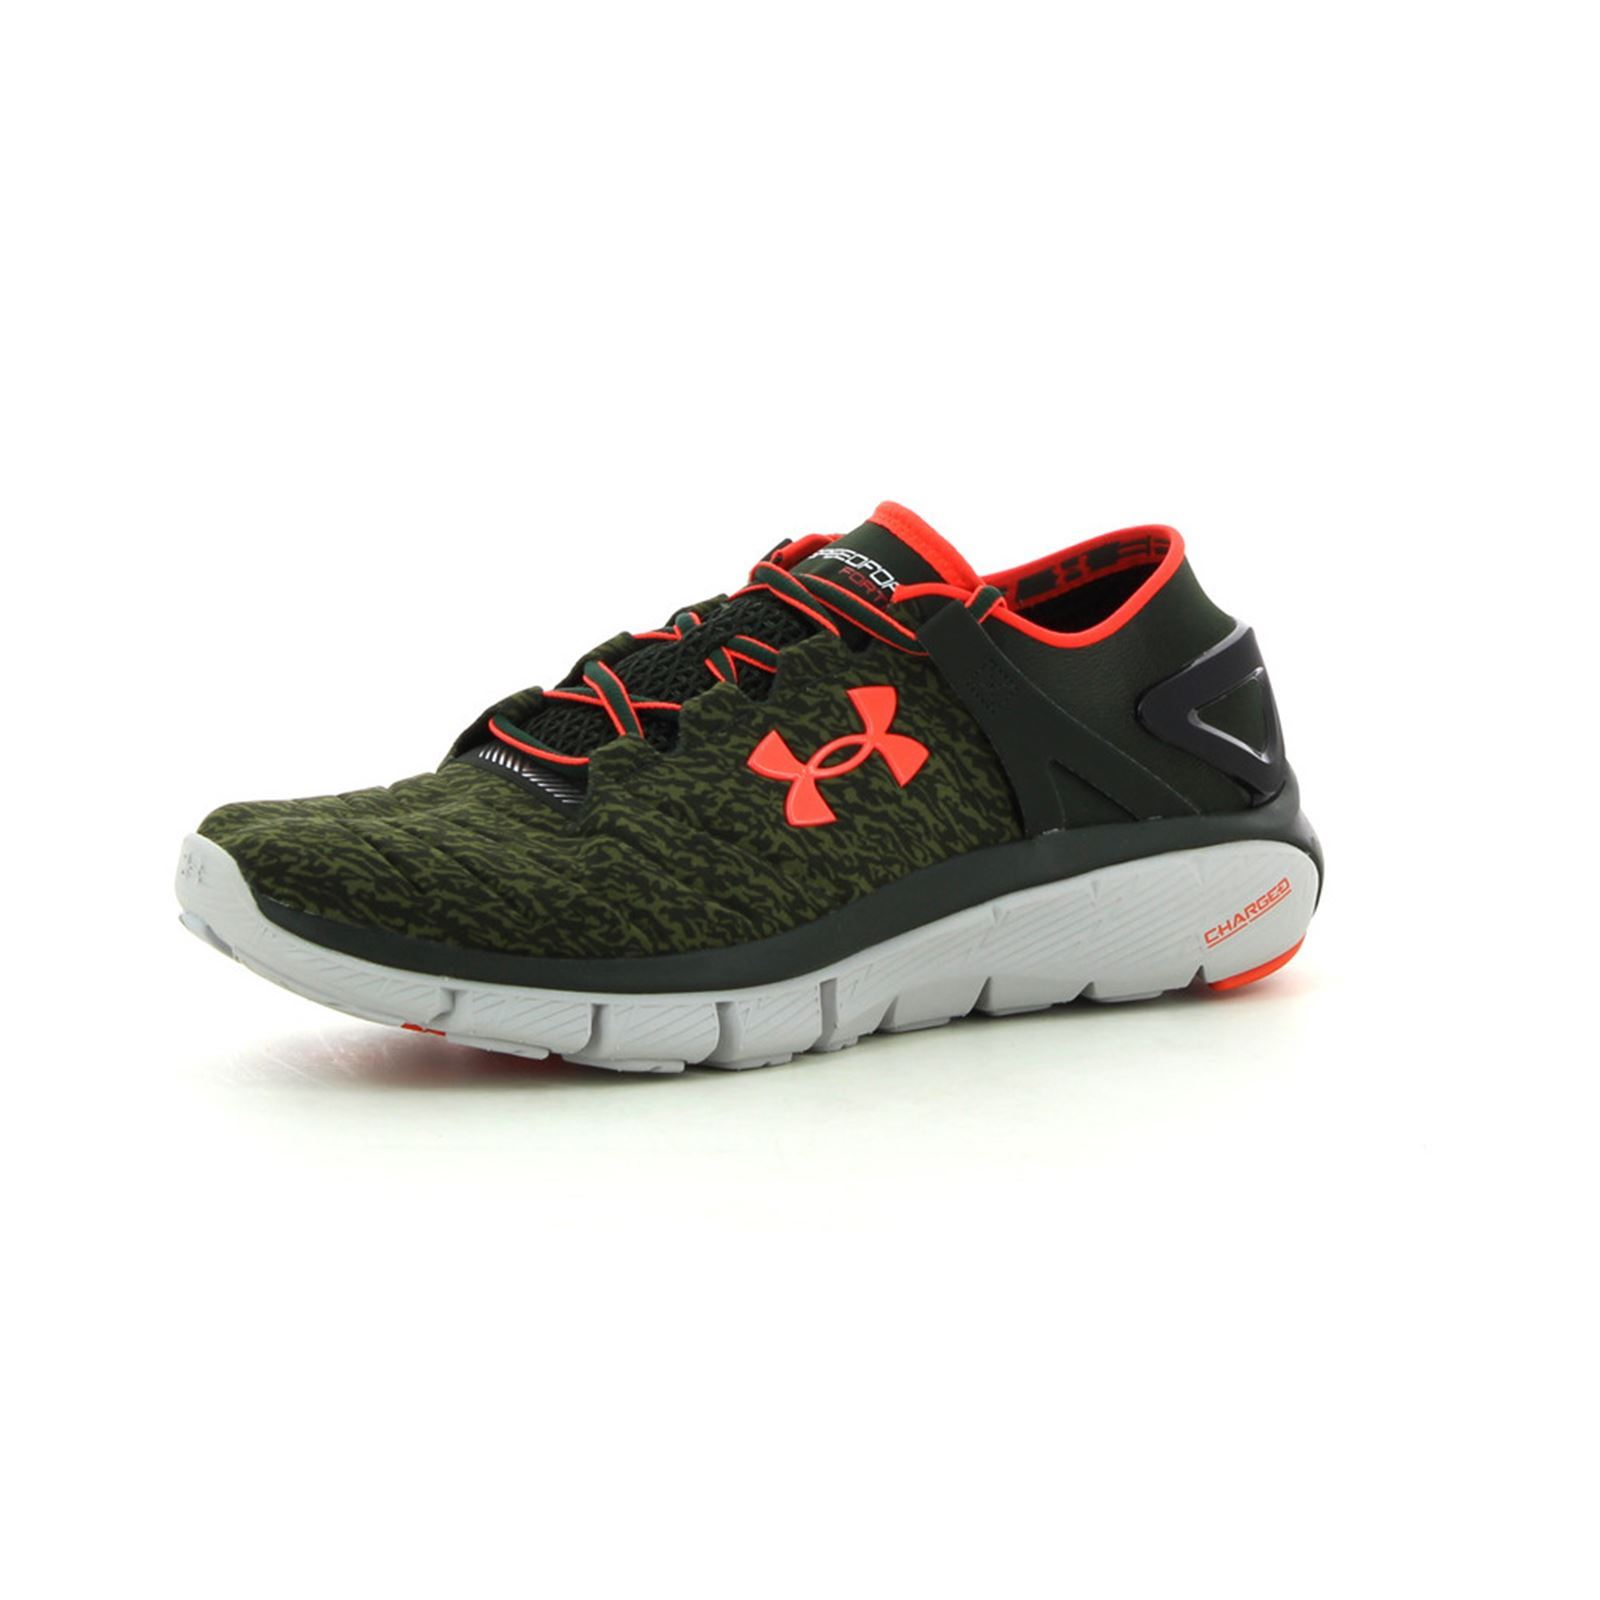 Men's speedform fortis gr Chaussures de running vert